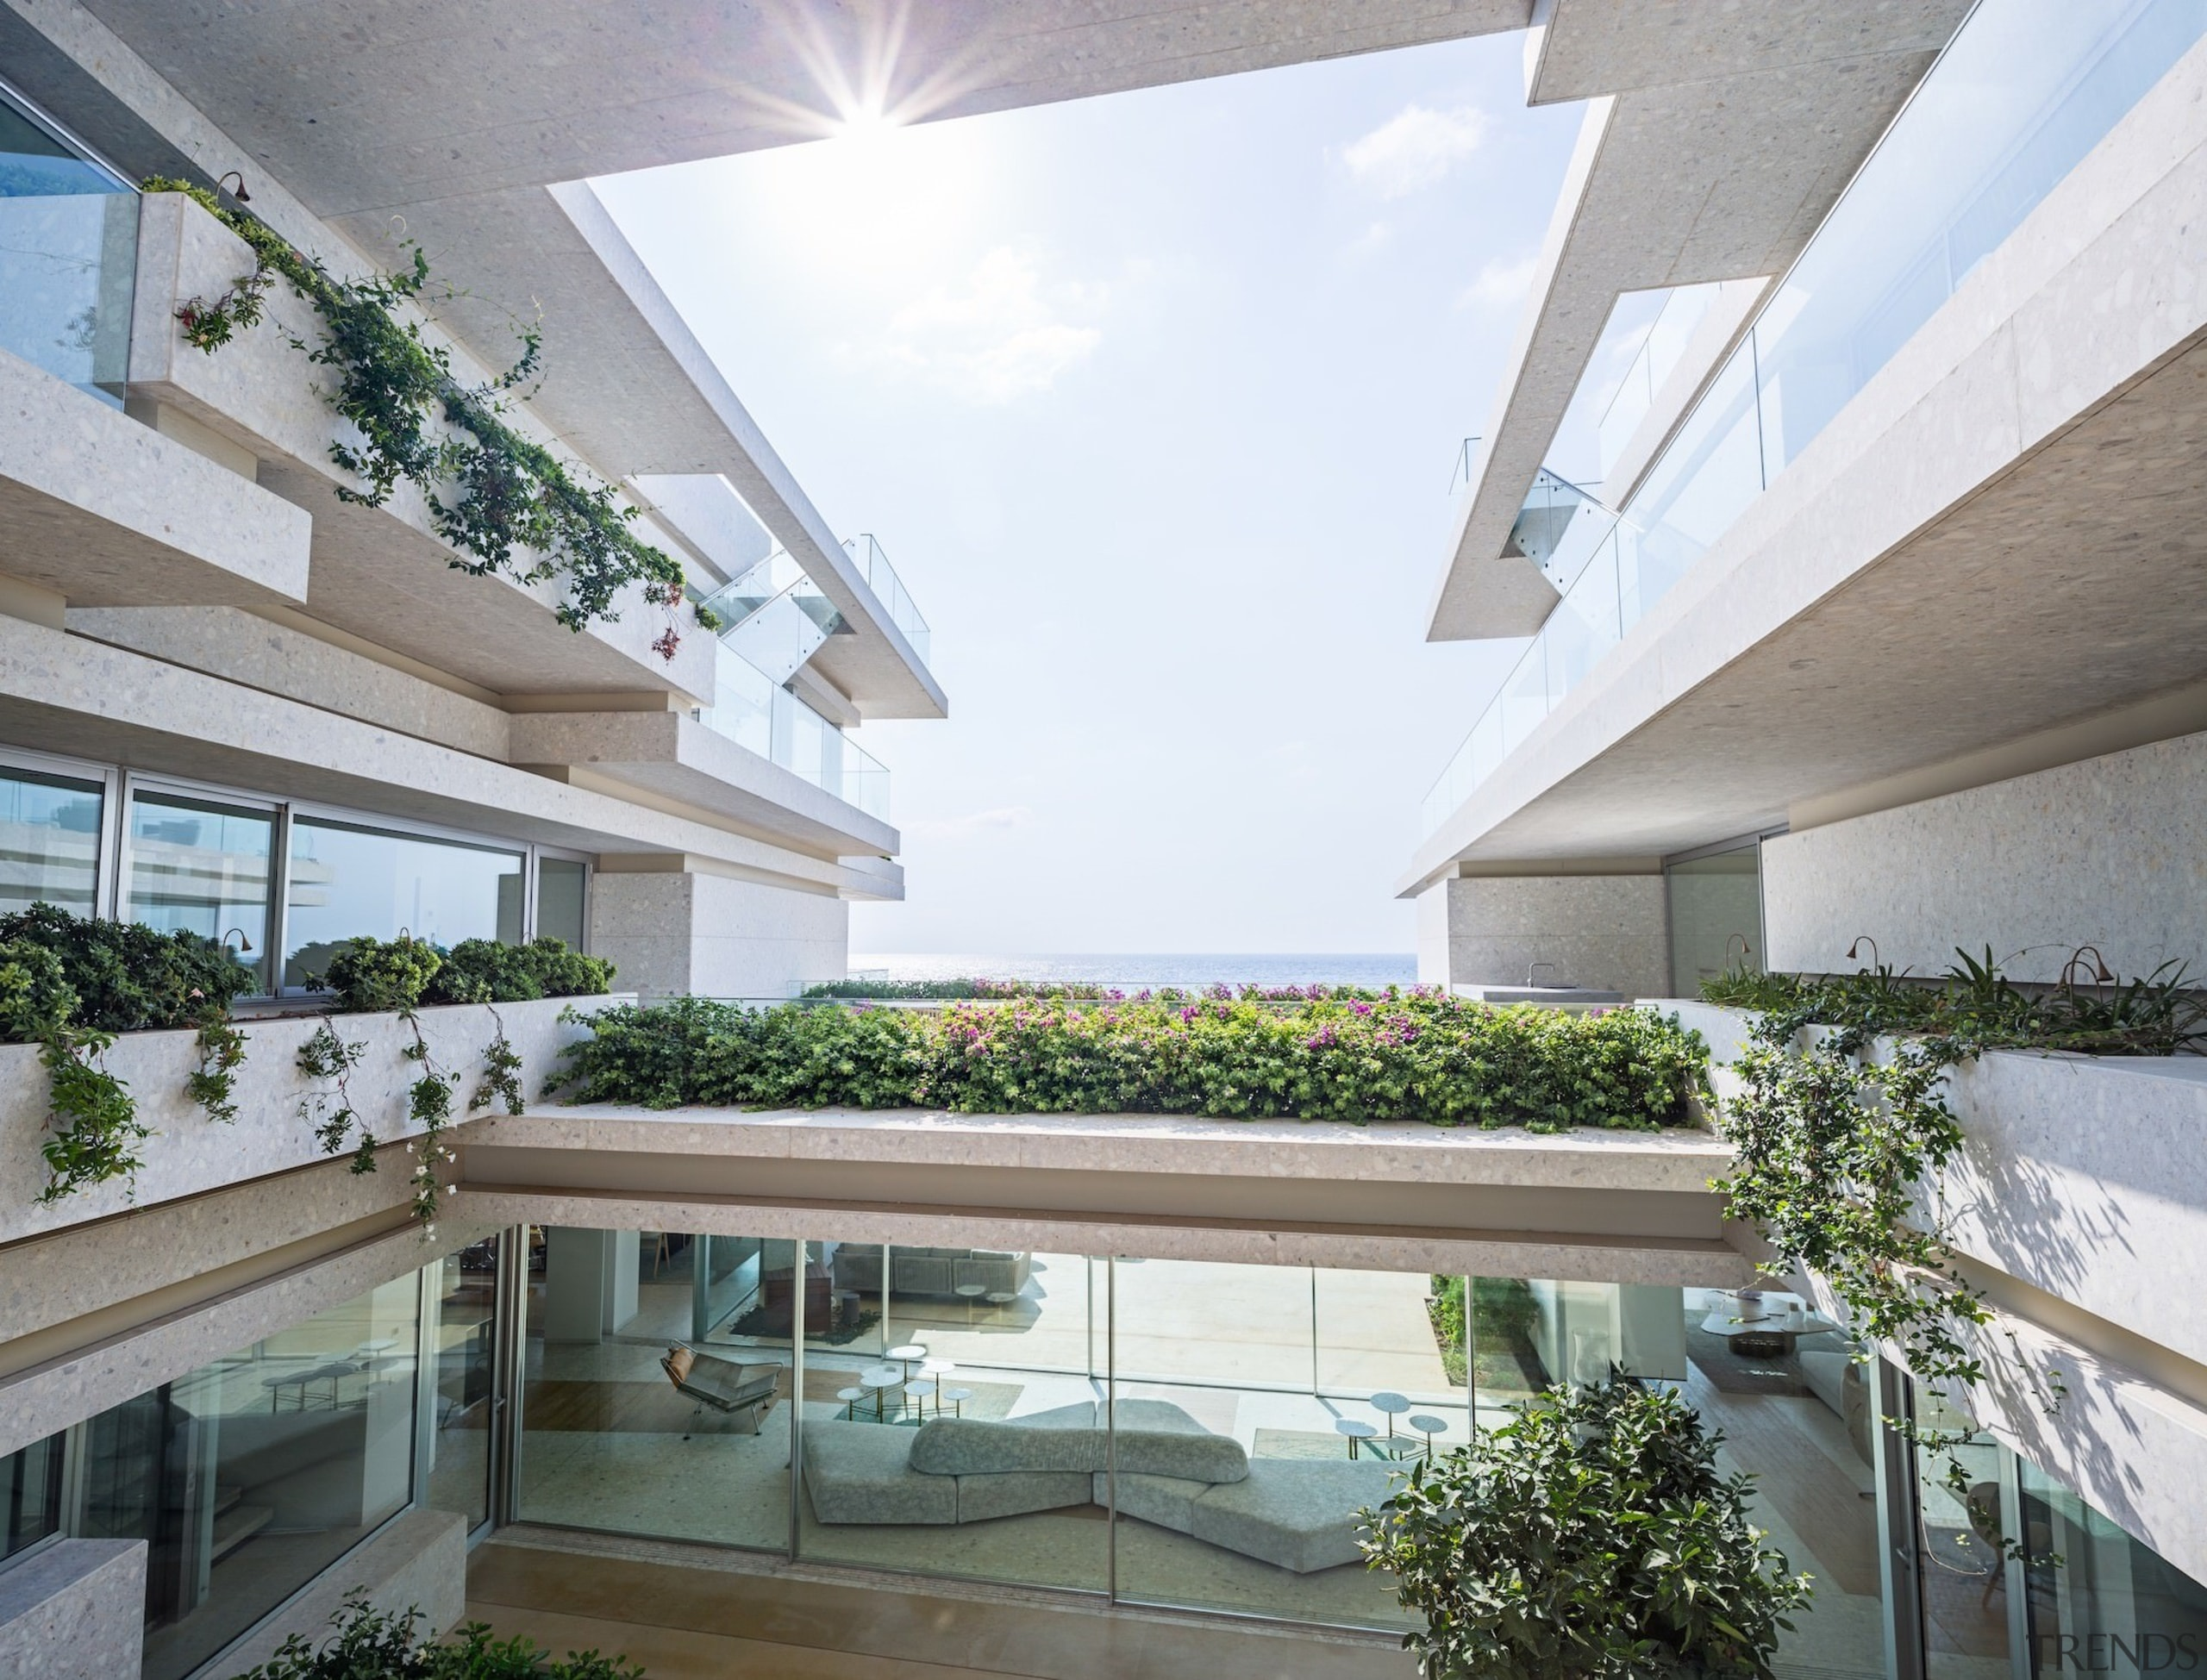 This large courtyard opens up to the sea apartment, architecture, balcony, condominium, courtyard, daylighting, daytime, estate, facade, home, house, interior design, mixed use, property, real estate, residential area, roof, window, white, gray